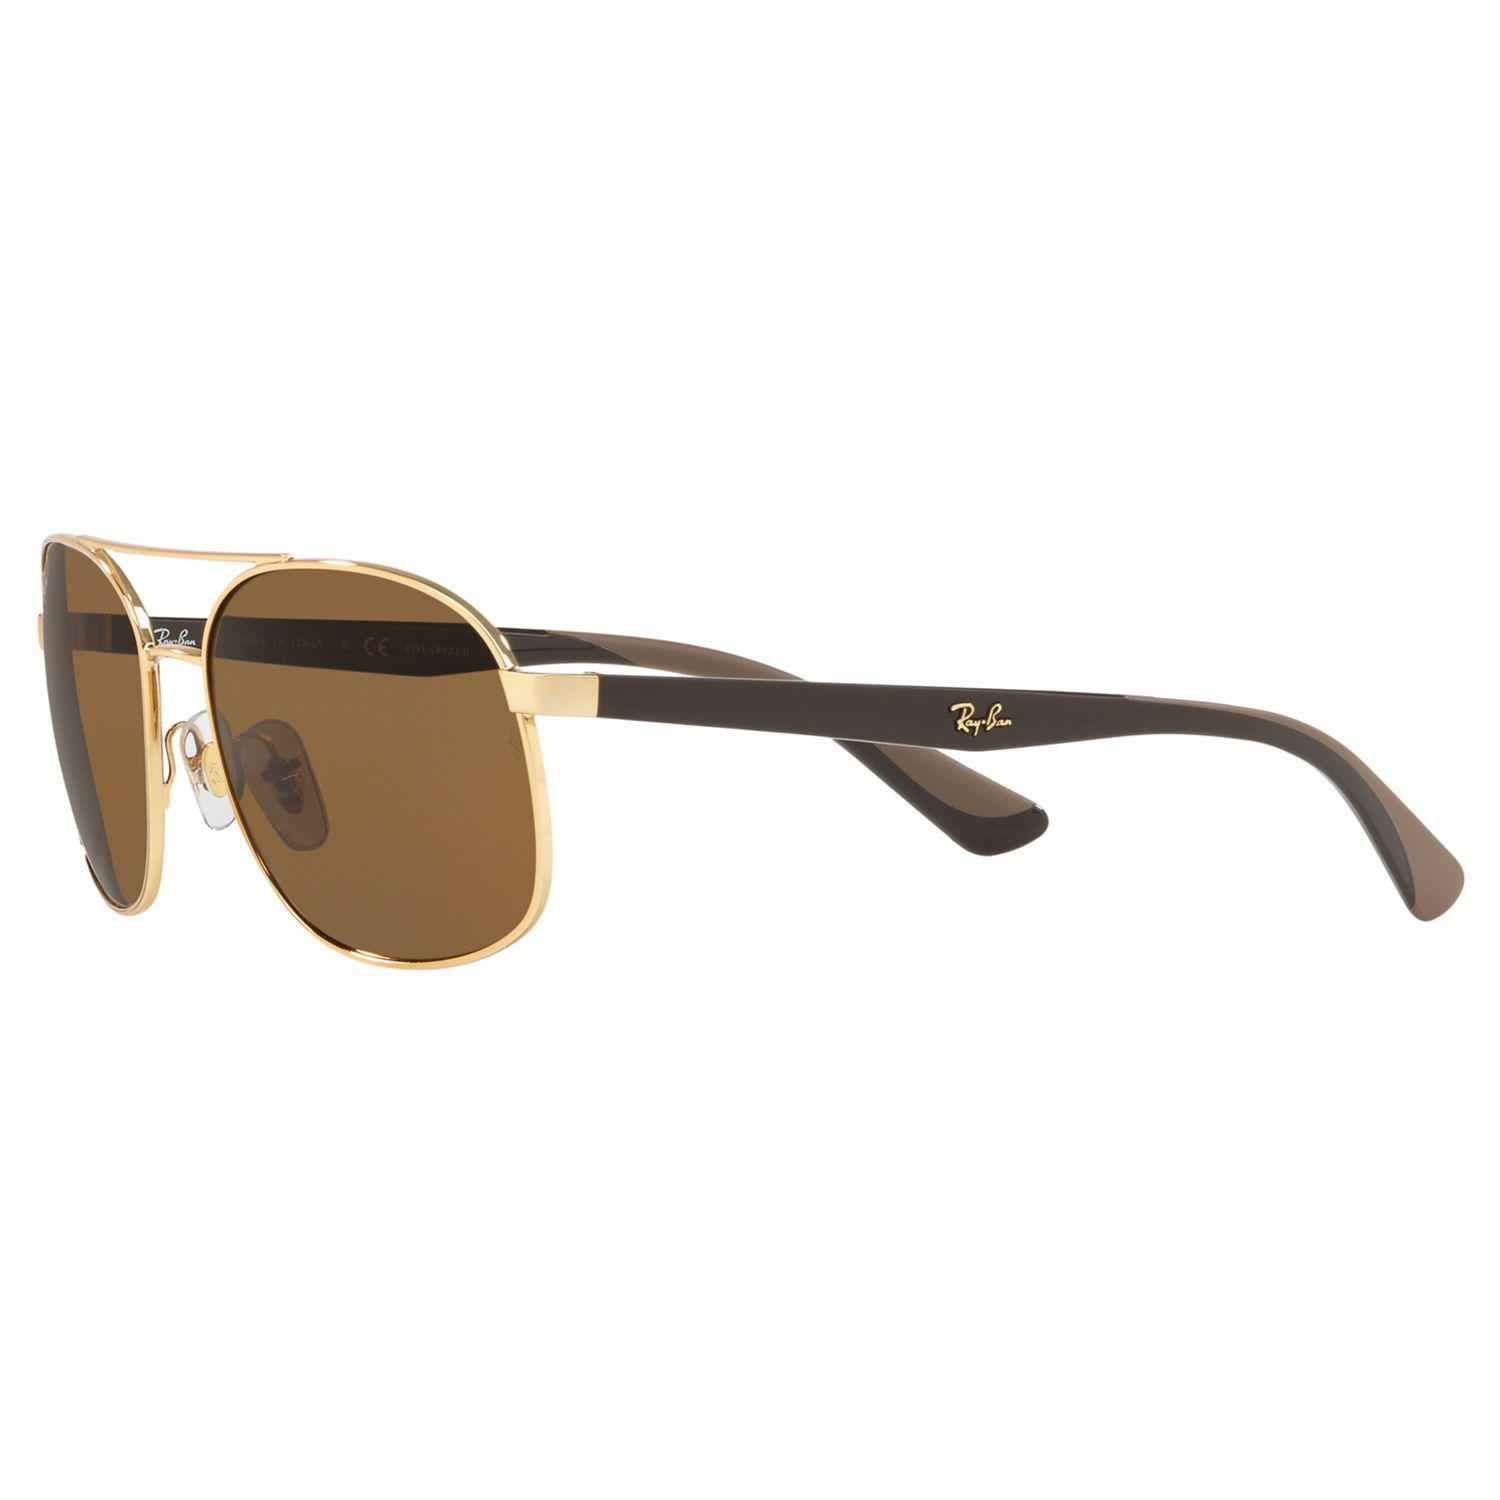 11edf17a4863d Ray-Ban - Brown Rb3593 Unisex Polarised Oval Sunglasses for Men - Lyst.  View fullscreen